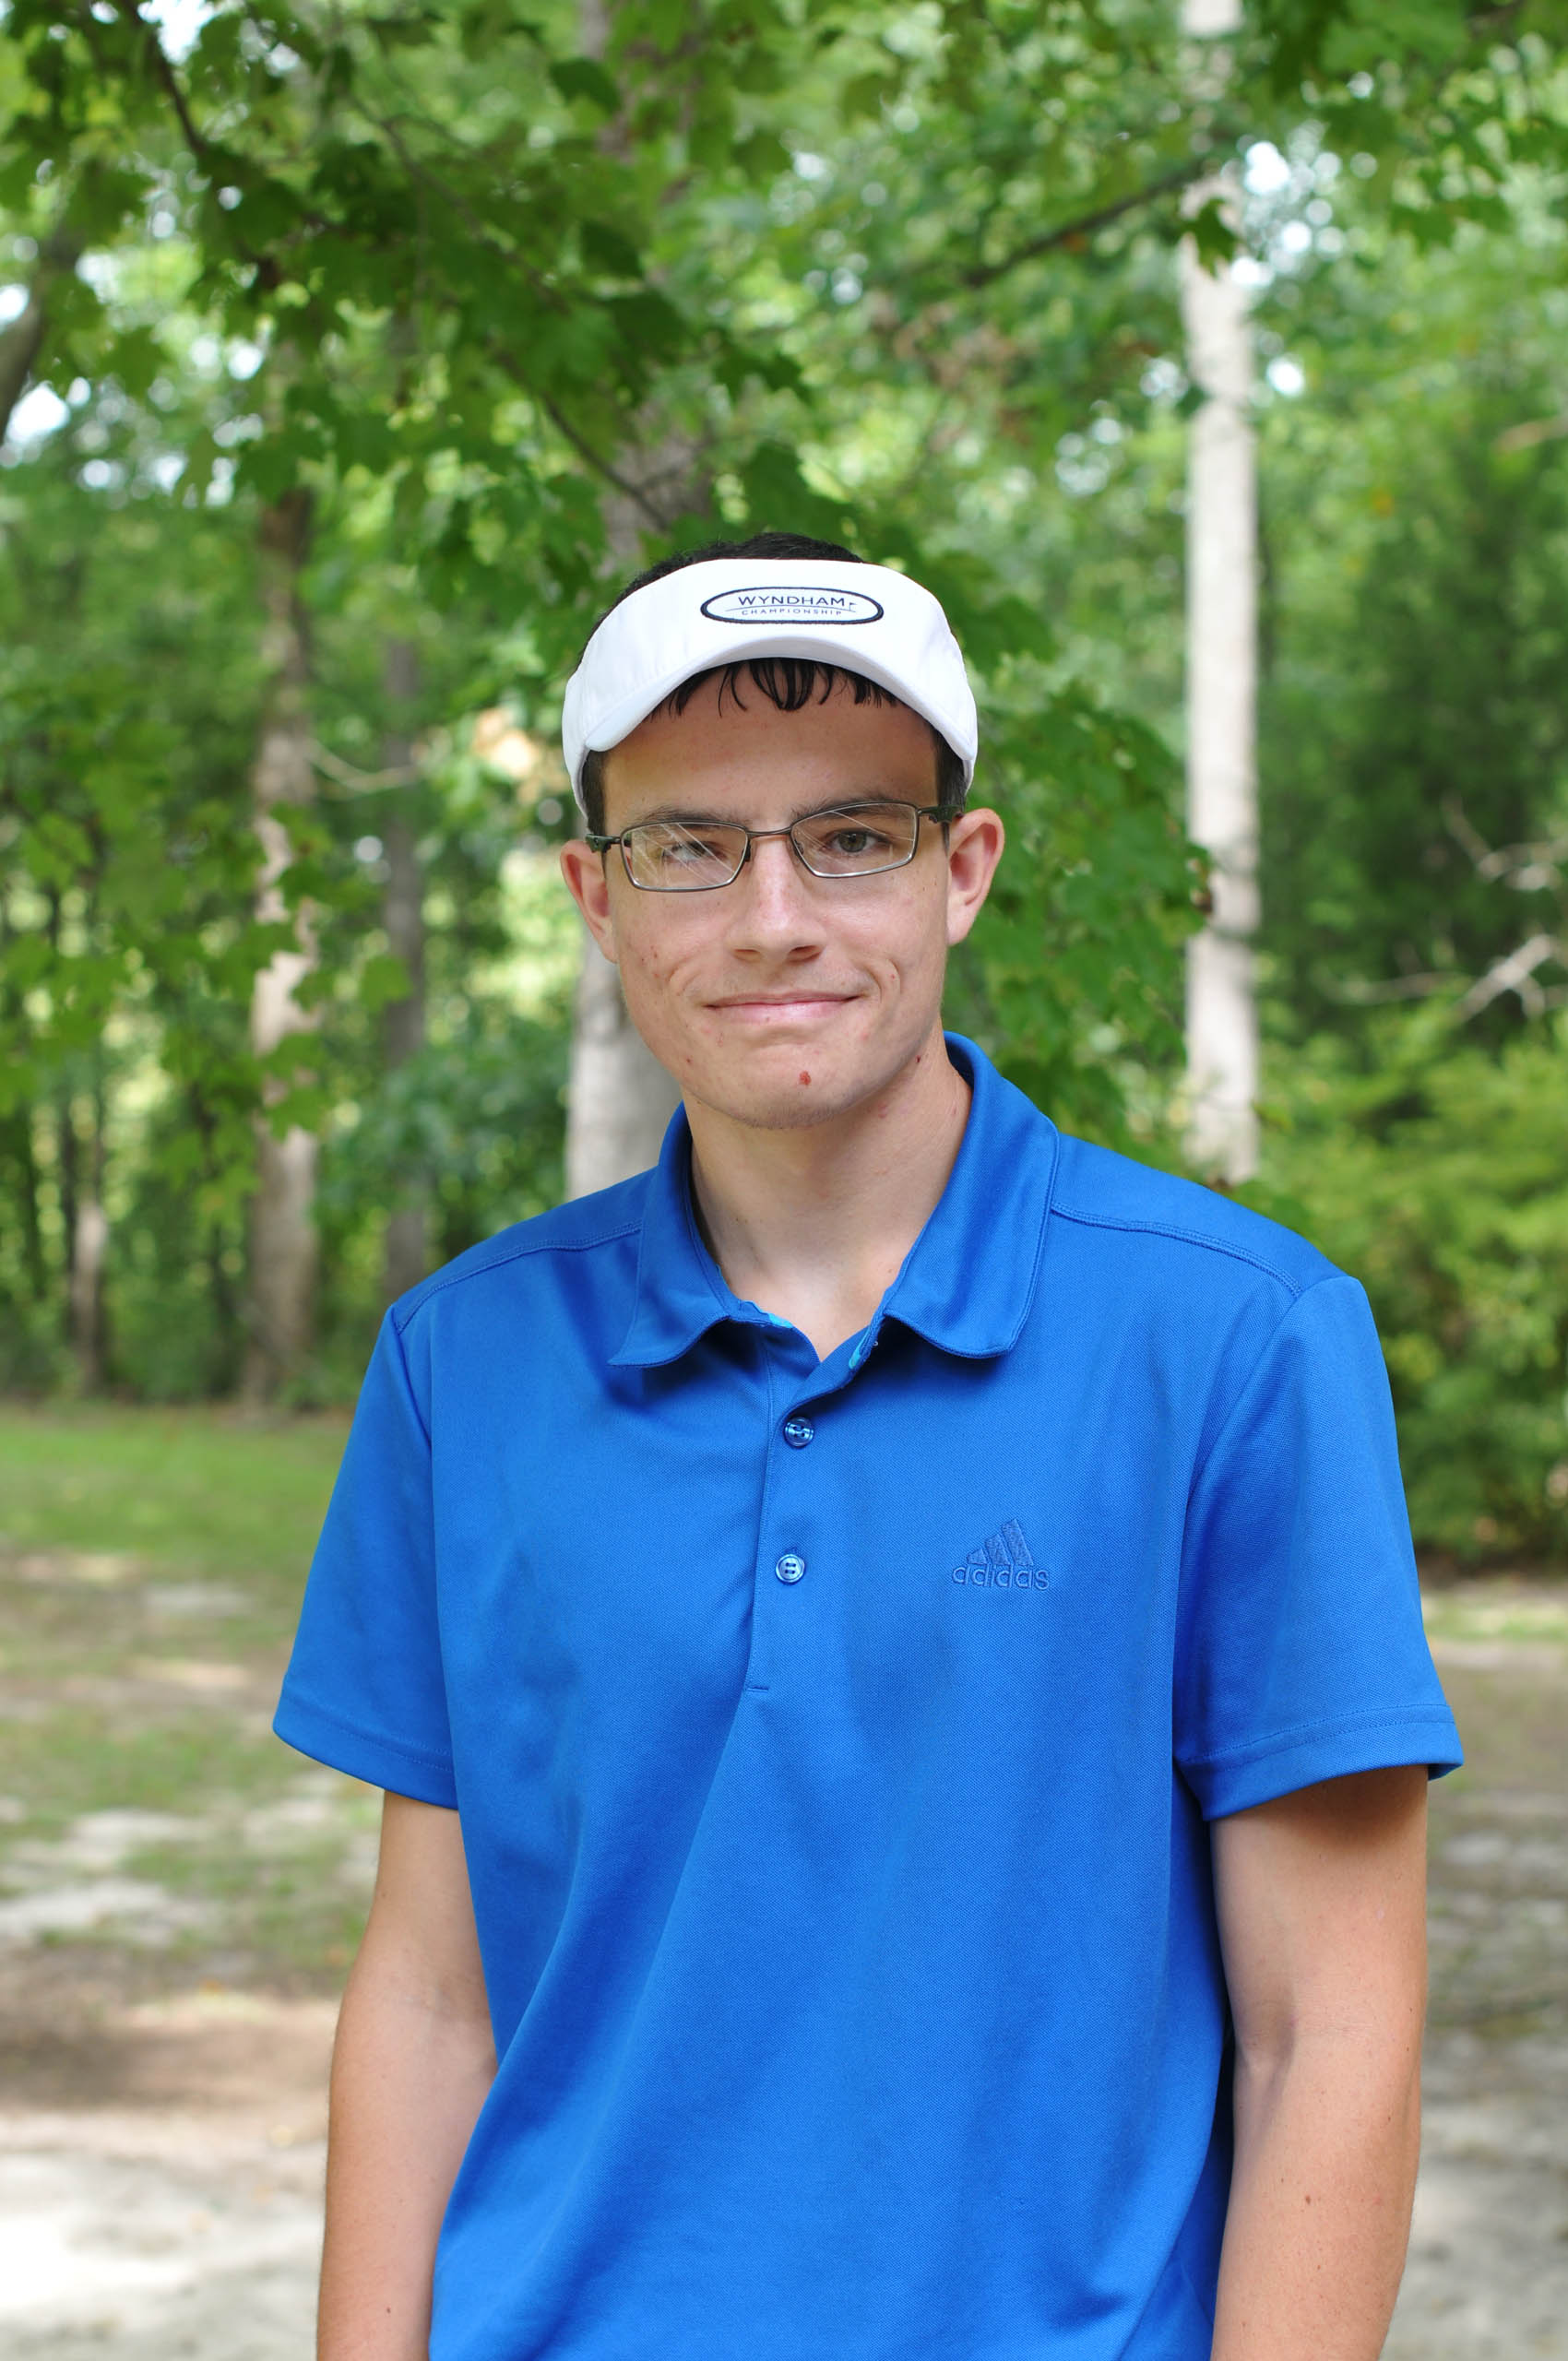 Read the full story, CCCC golfer David Smith gets hole-in-one